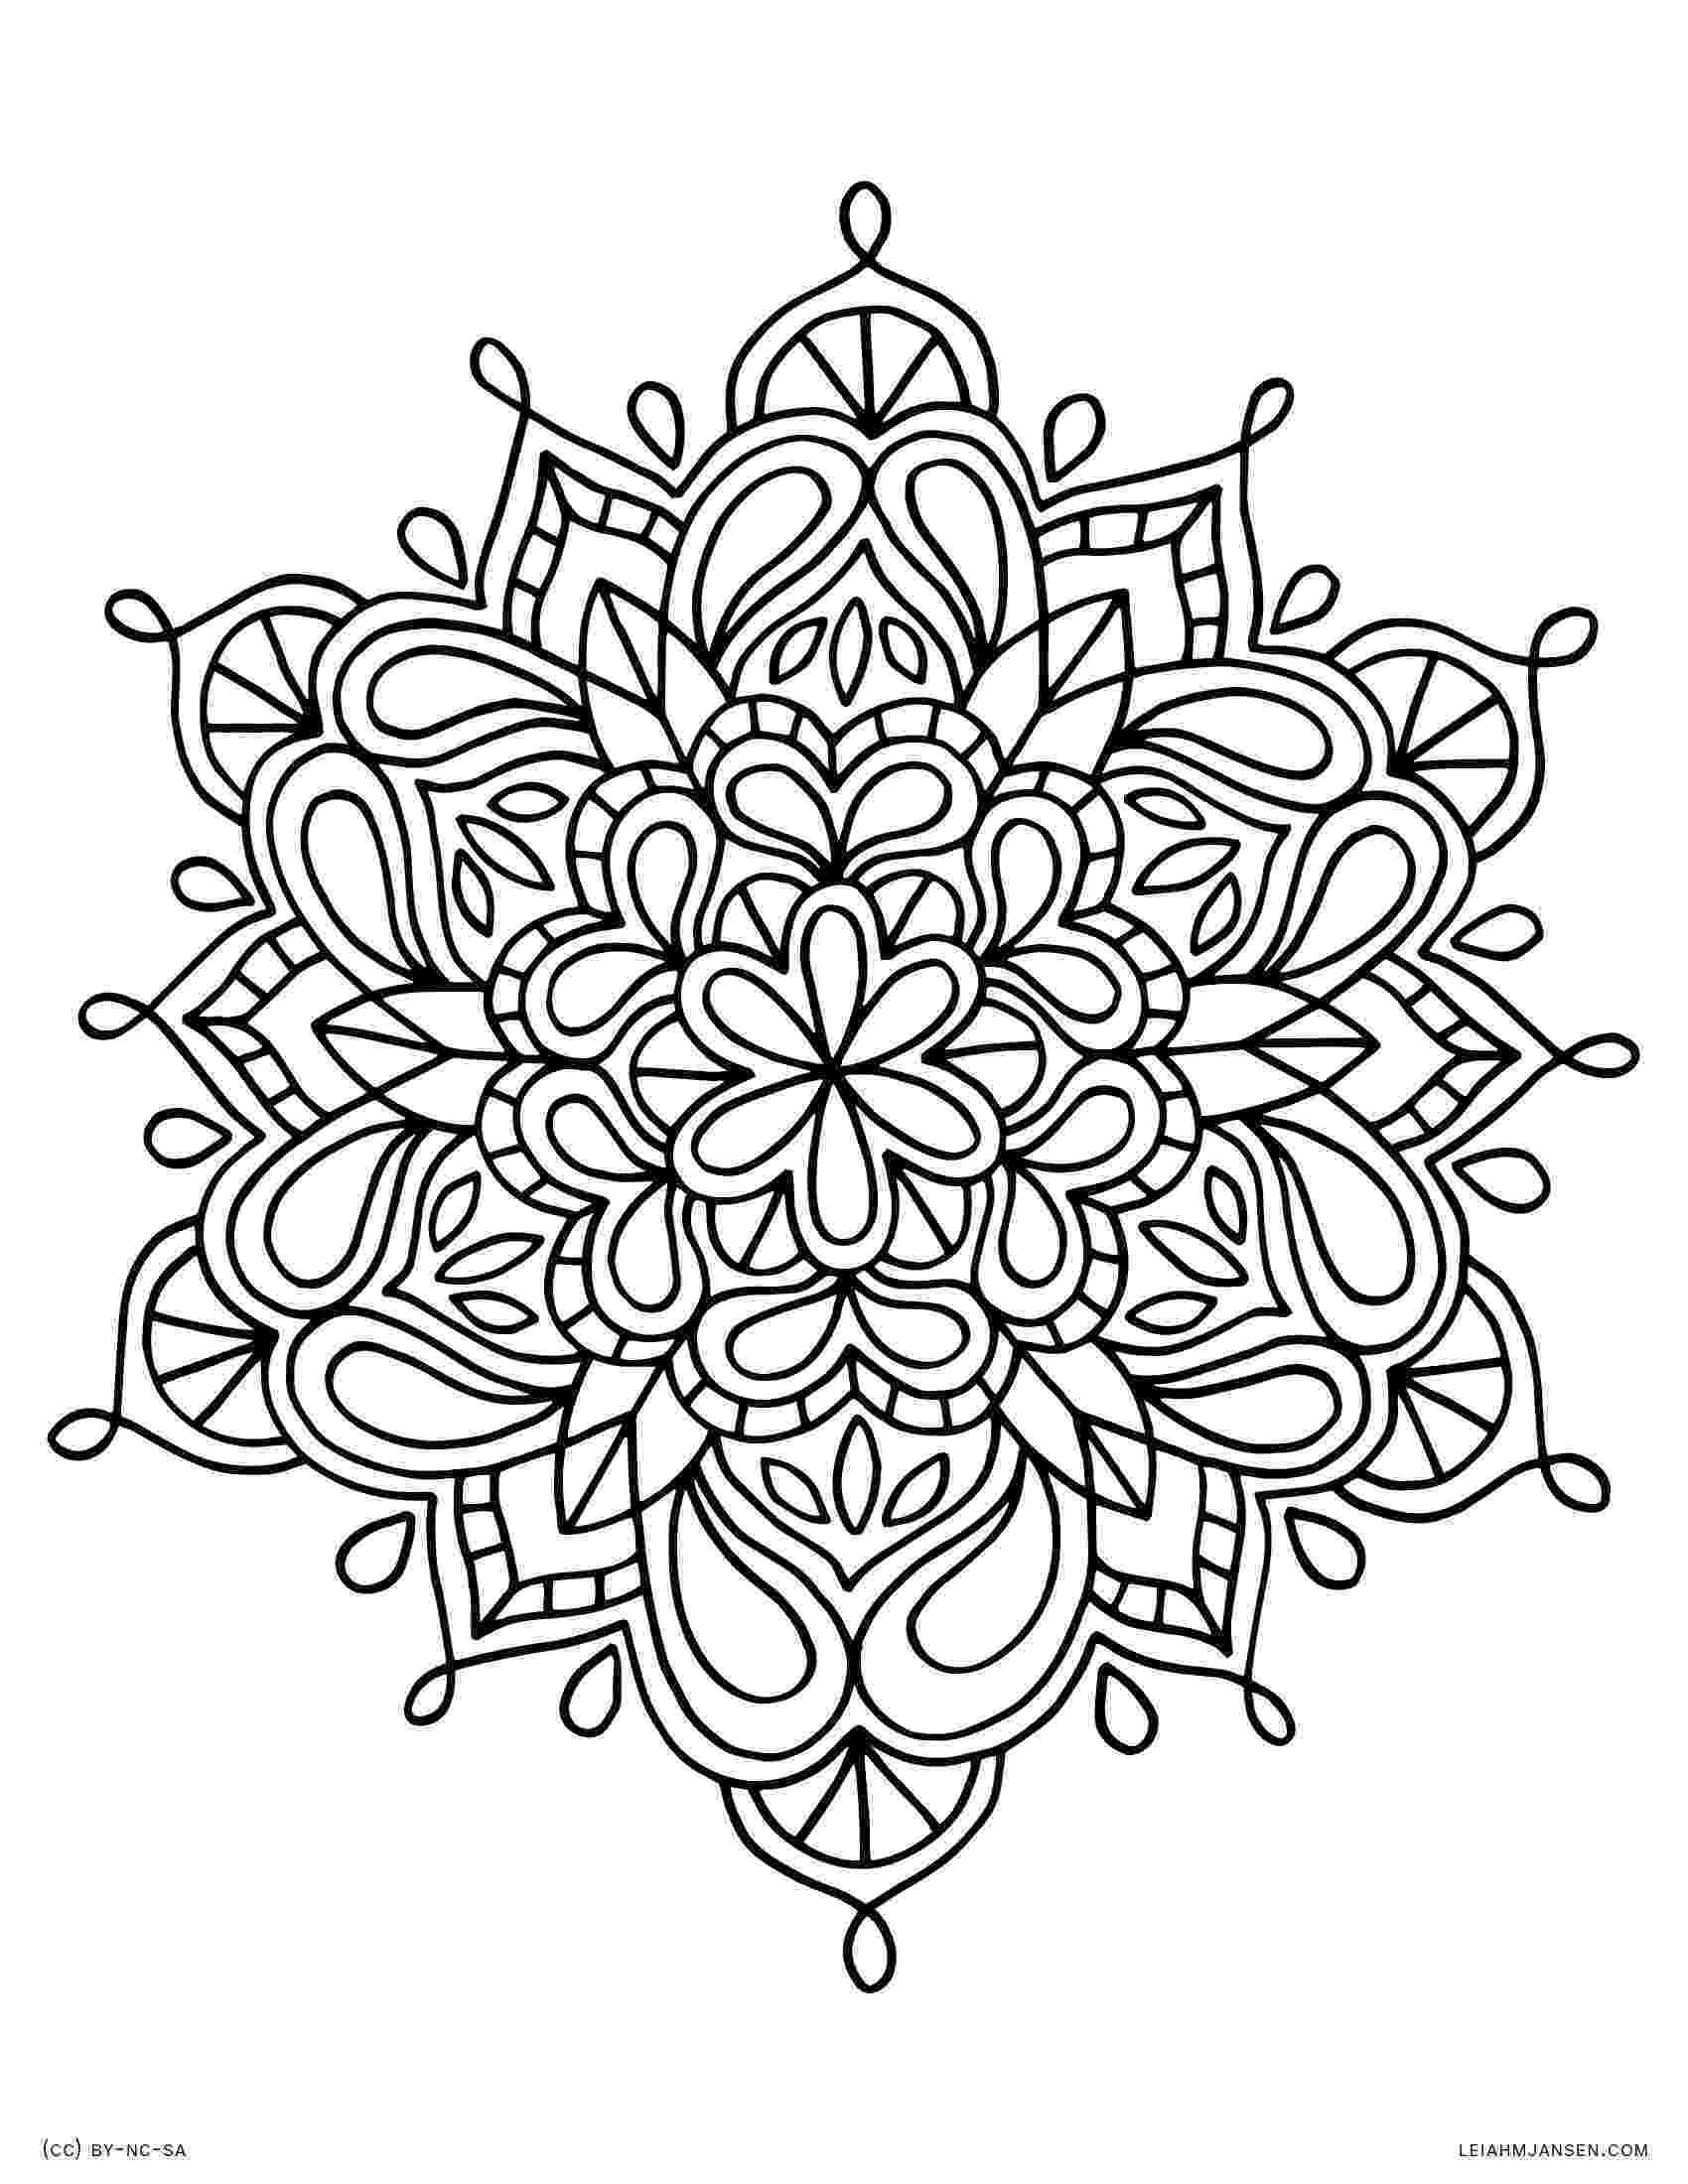 mandala free printable printable mandala coloring pages for kids cool2bkids printable free mandala